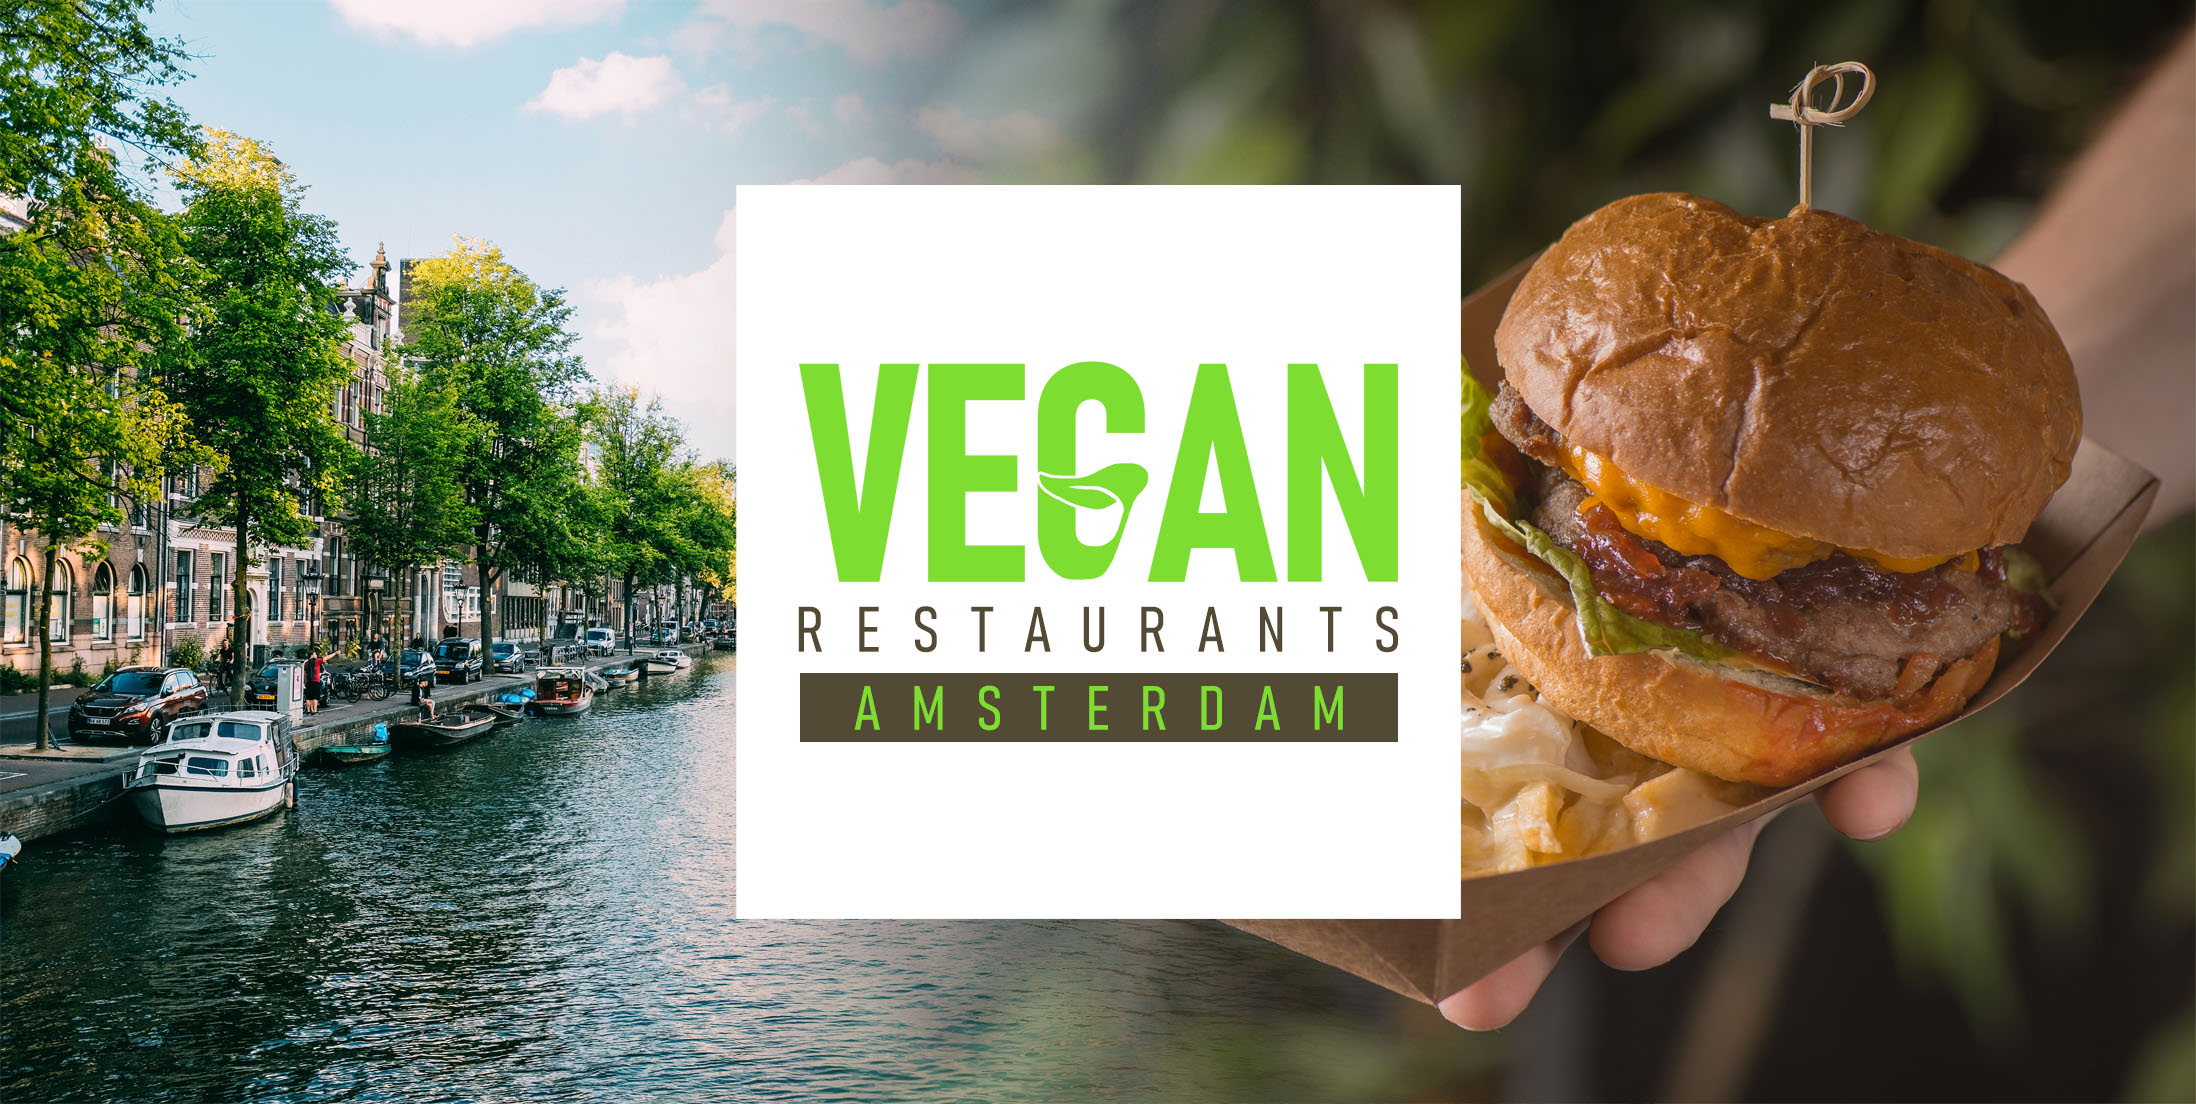 The Best 7 Vegan Restaurants in Amsterdam